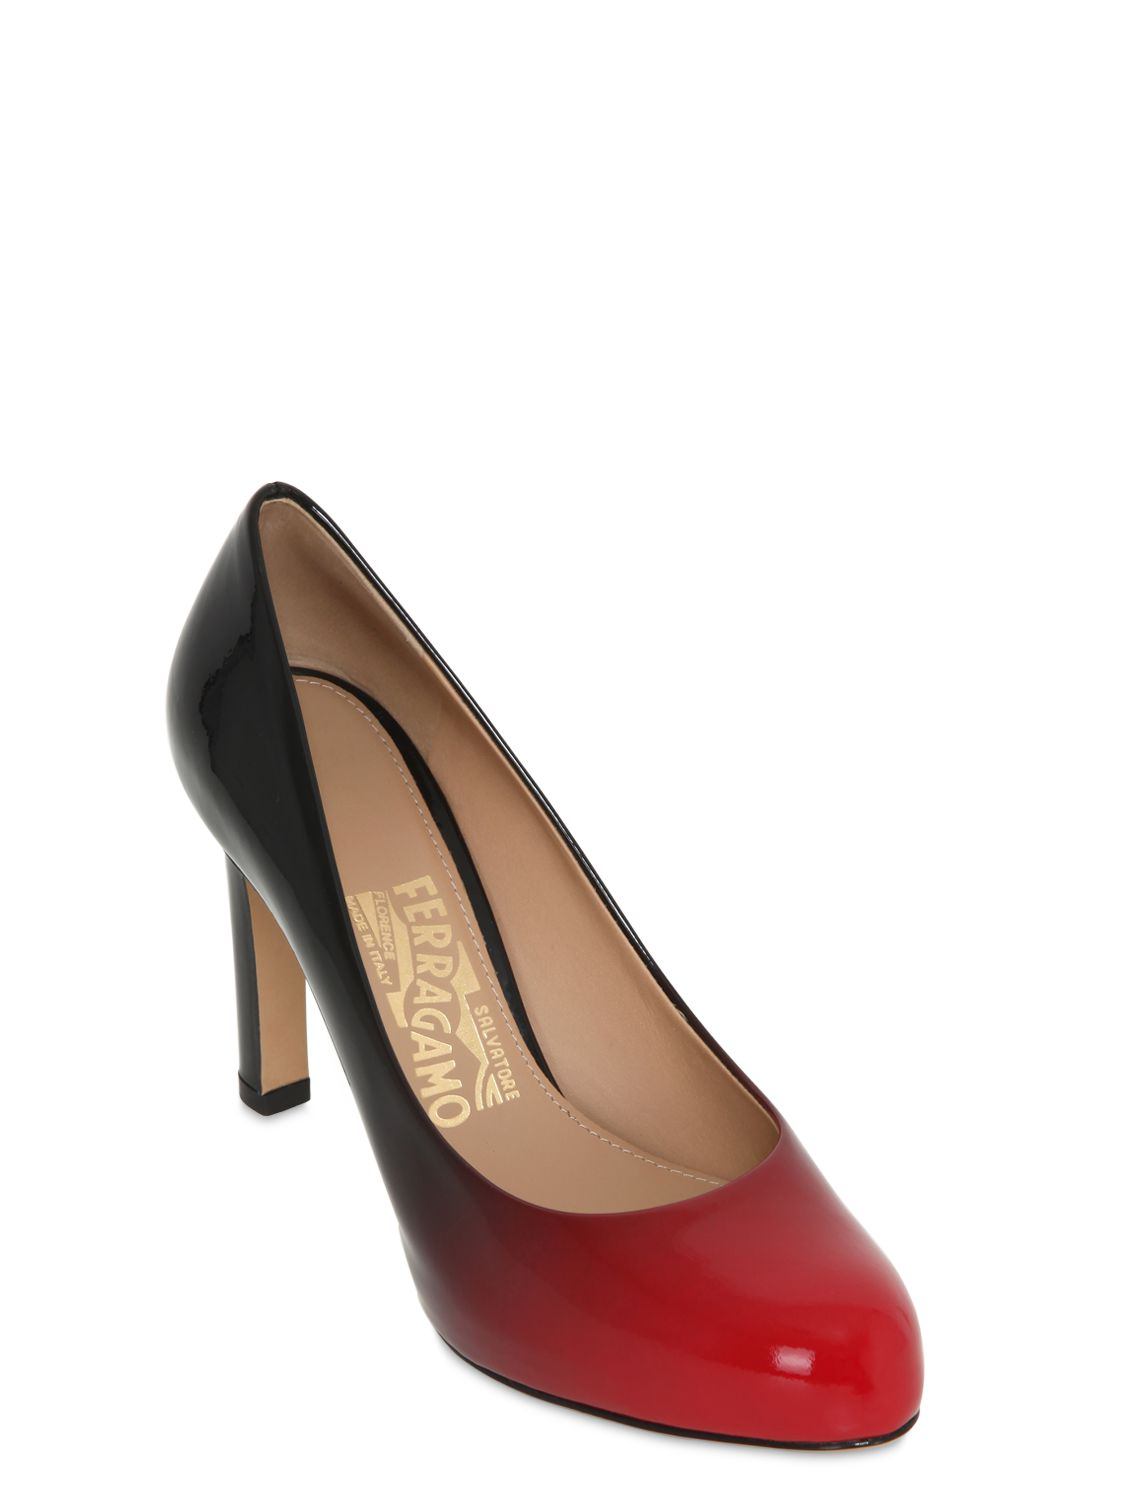 Hobbs Red Patent Leather Shoes